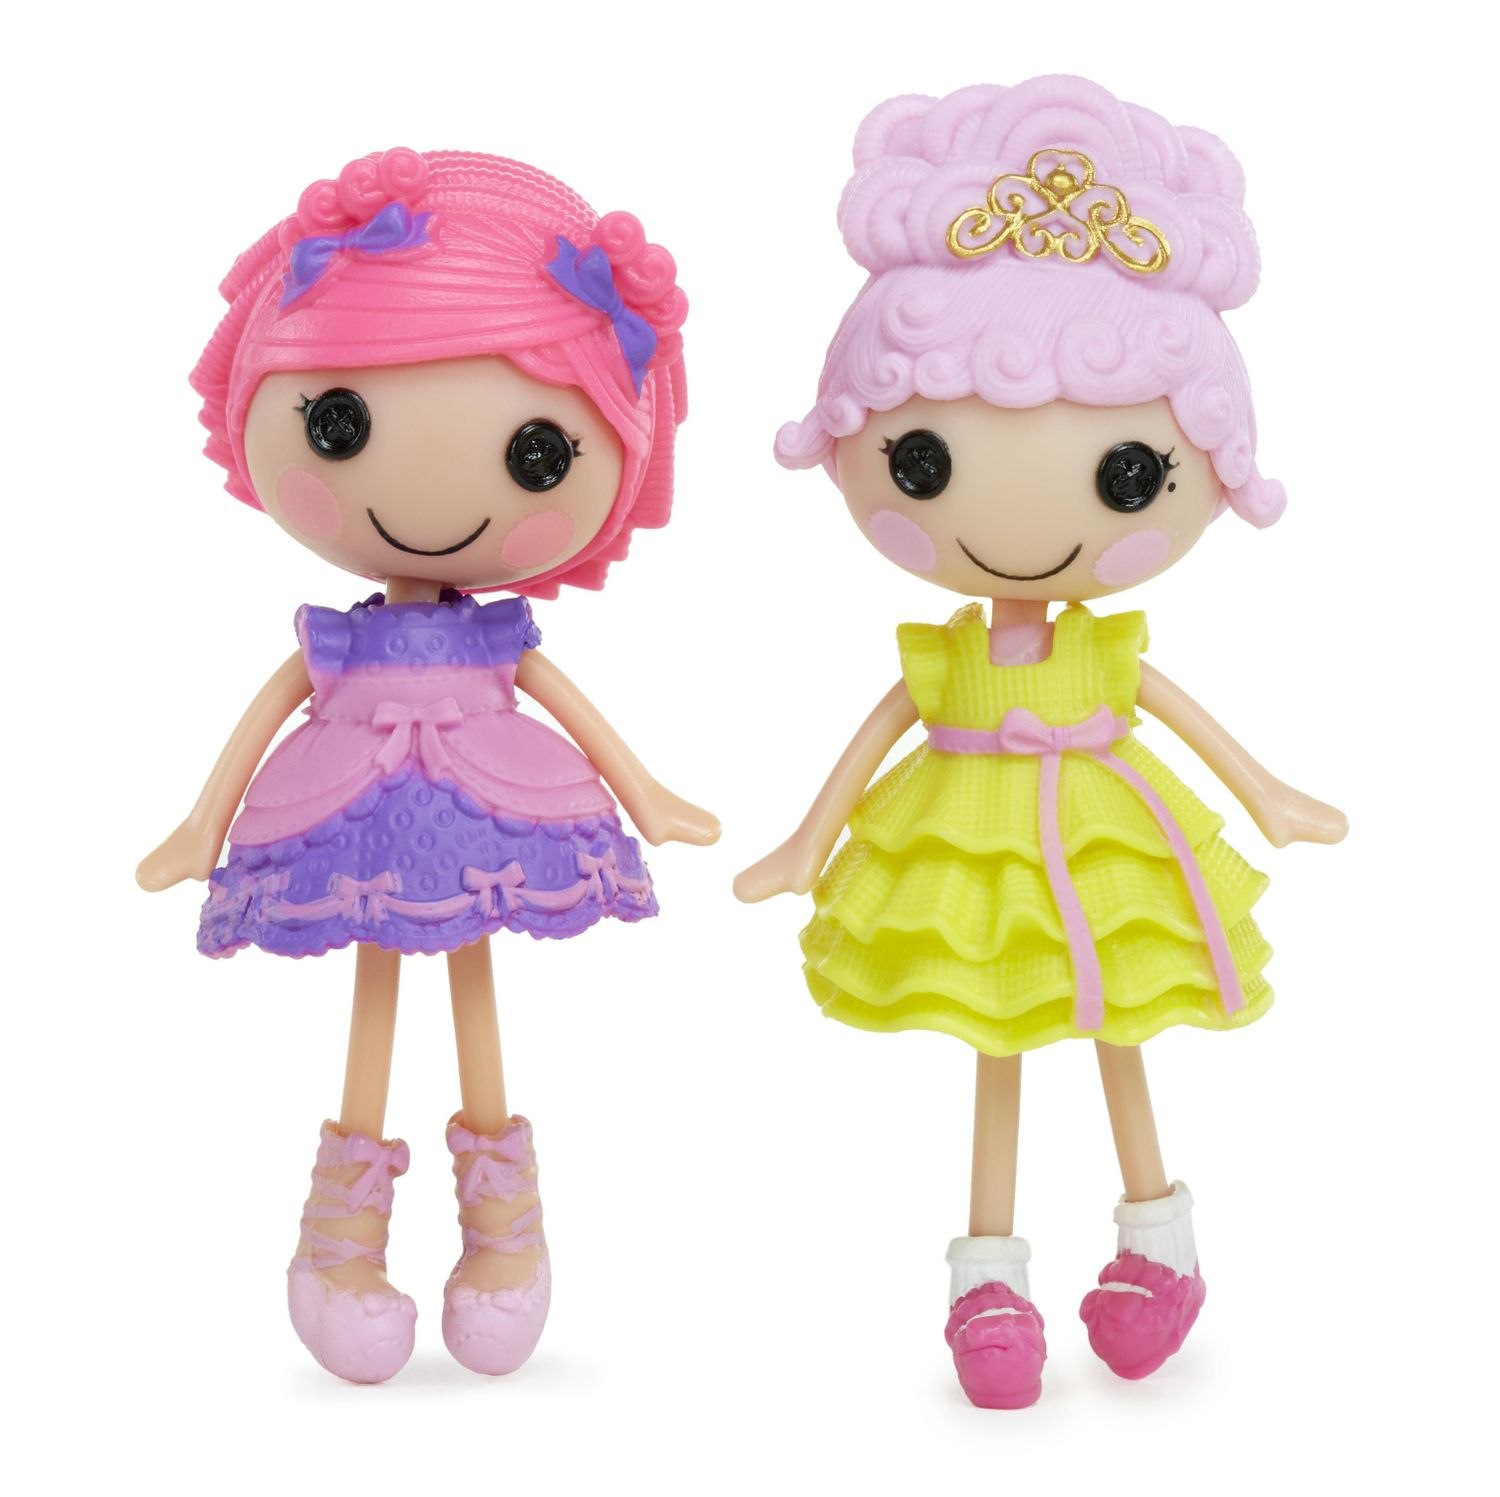 Lalaloopsy Deluxe Assortment